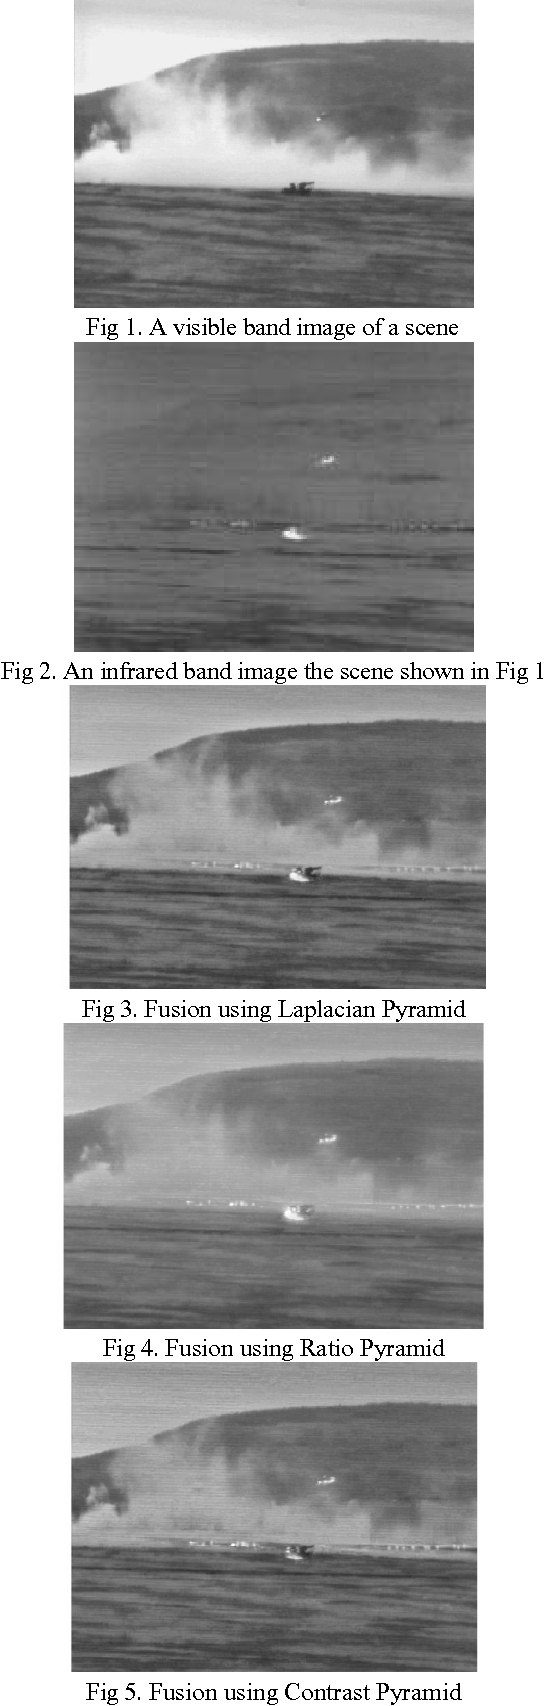 Fig 1. A visible band image of a scene